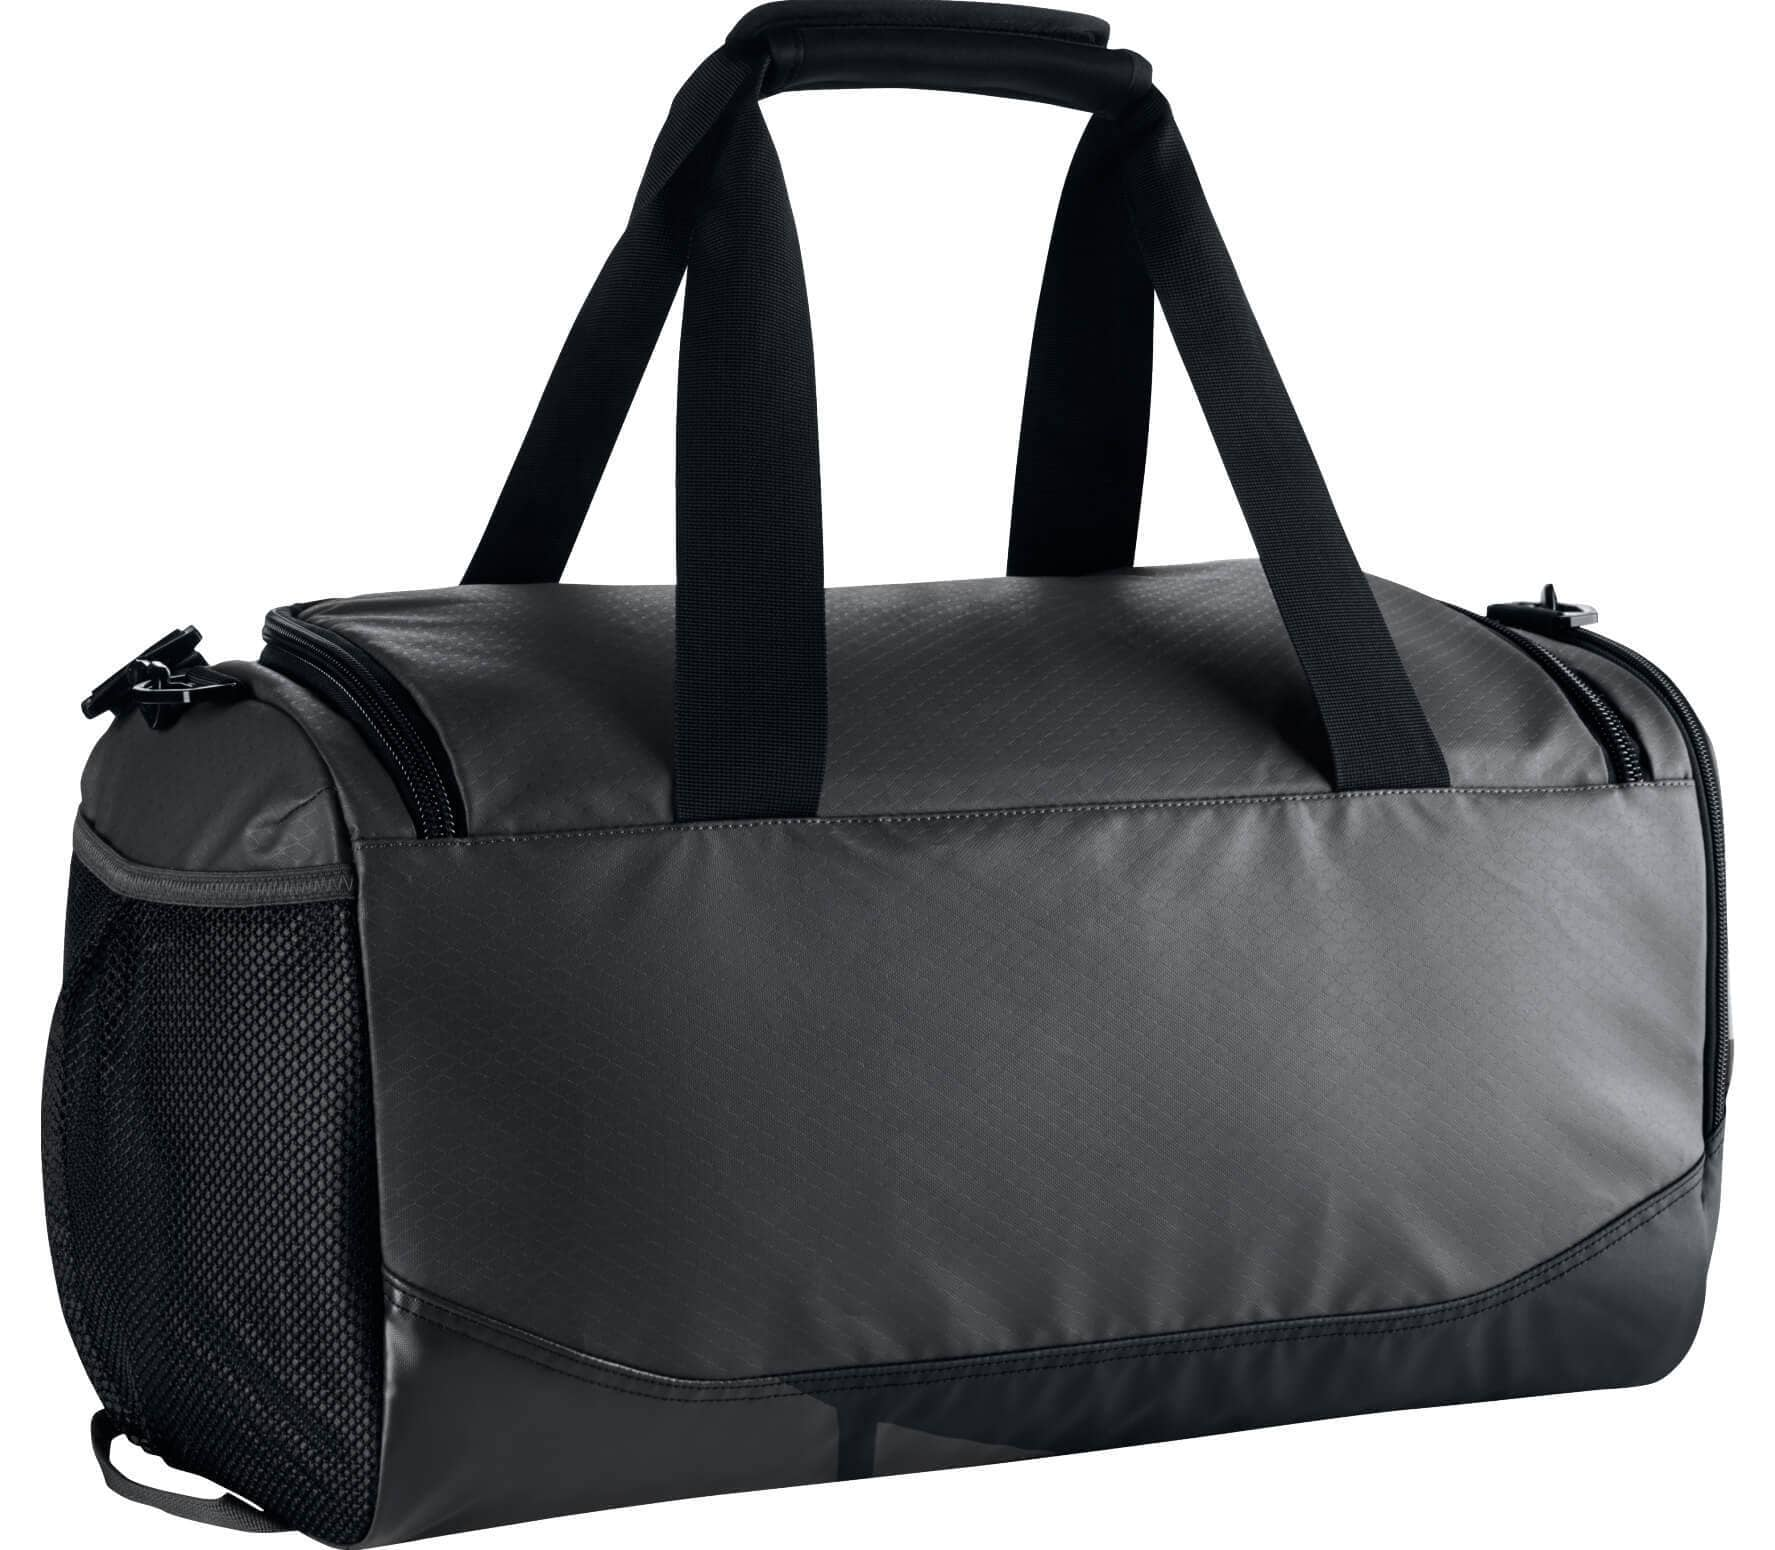 Nike - Vapor Max Air Small men s Training duffel bag (anthracite grey) 0cb3ea4ce